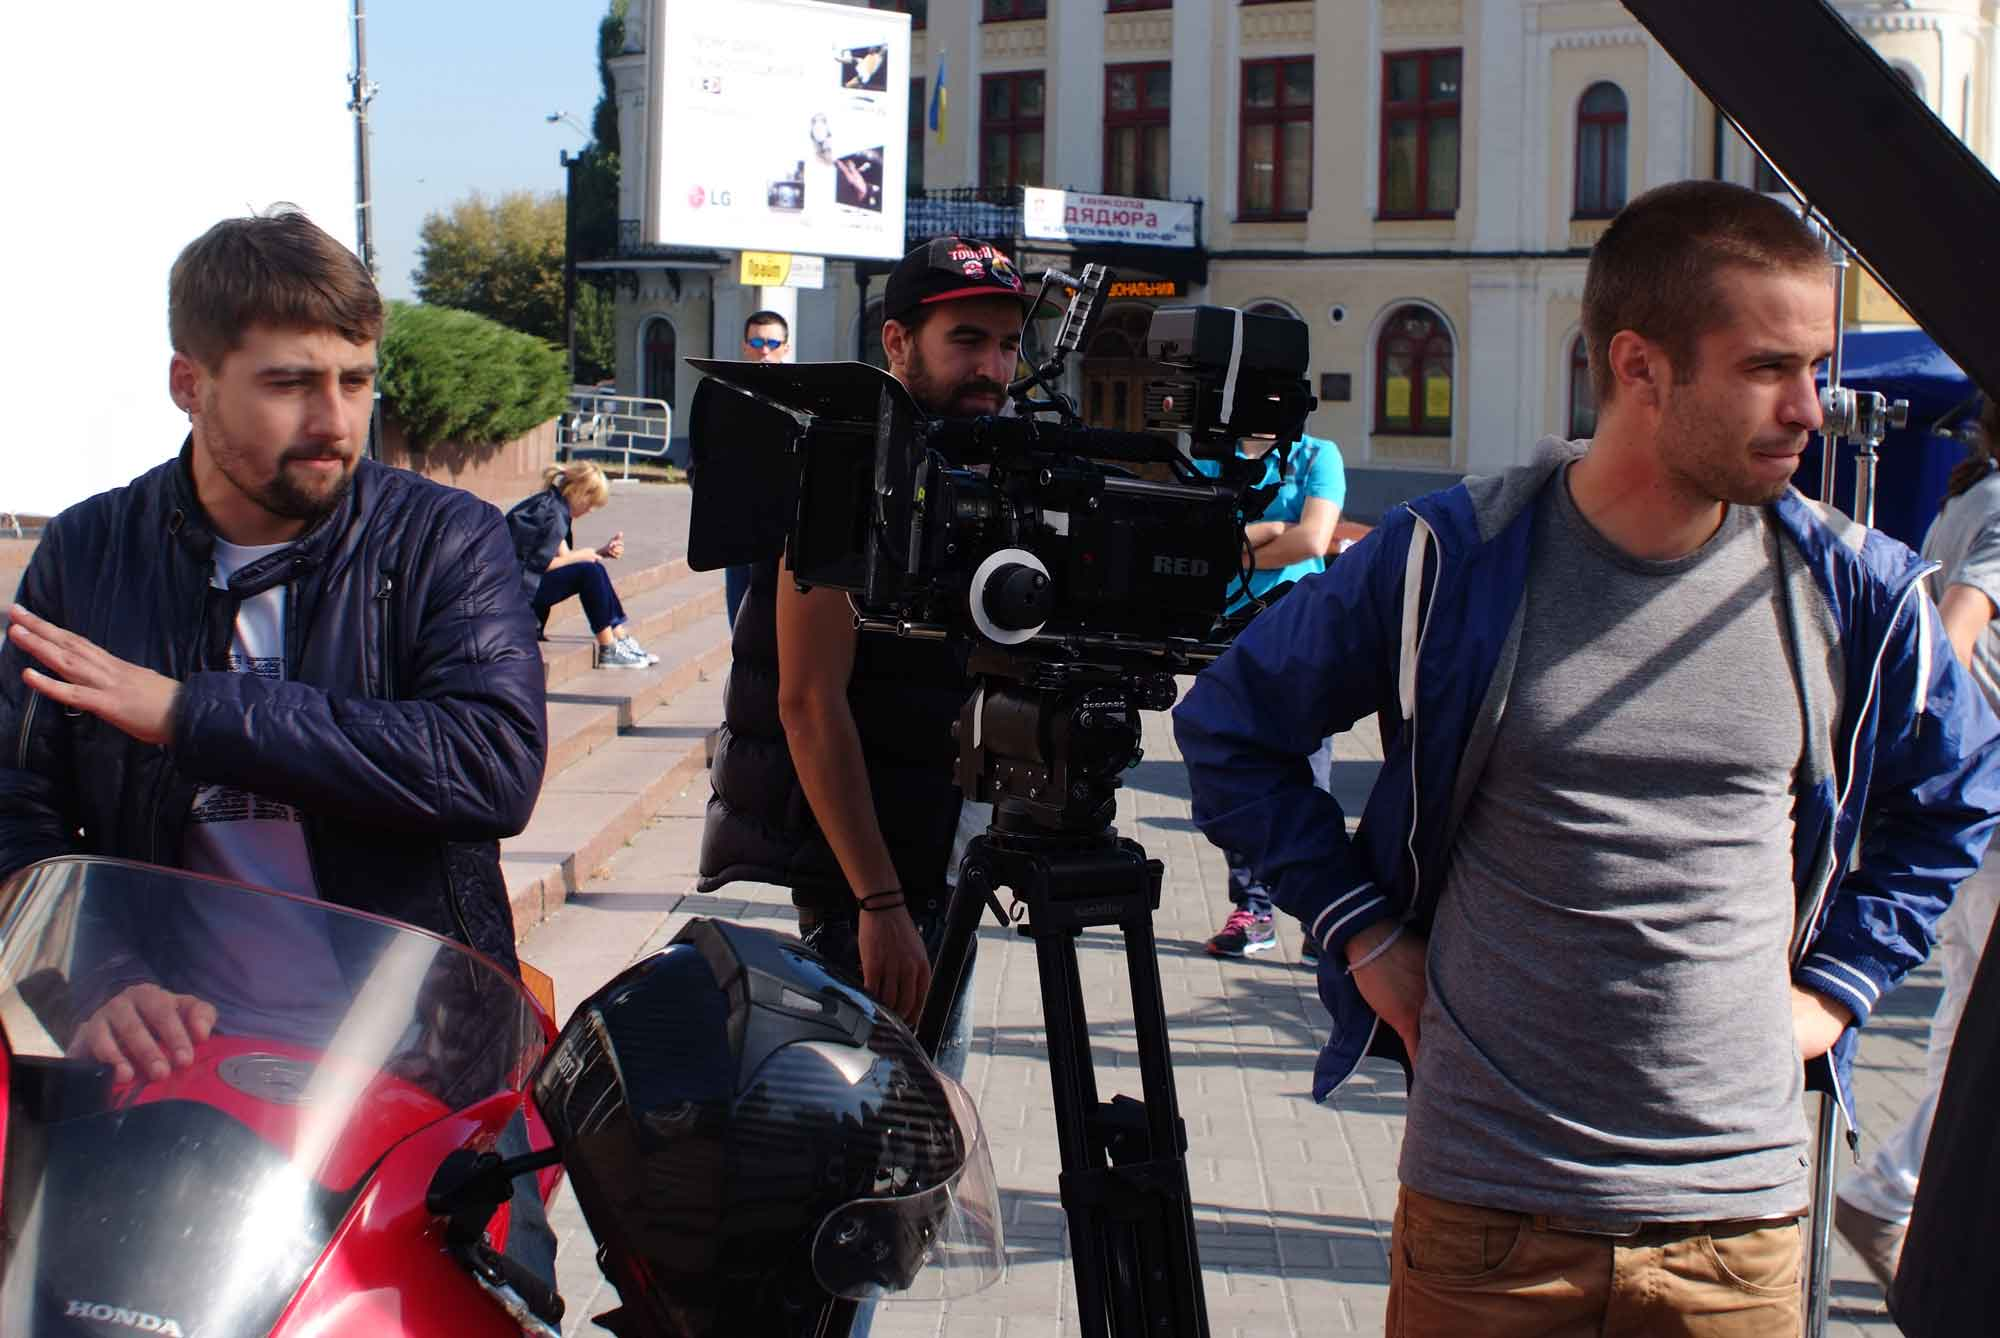 Andrew Rozhen (Director) and Dmitriy Nedria (DOP): Re-assessing scene location after first take